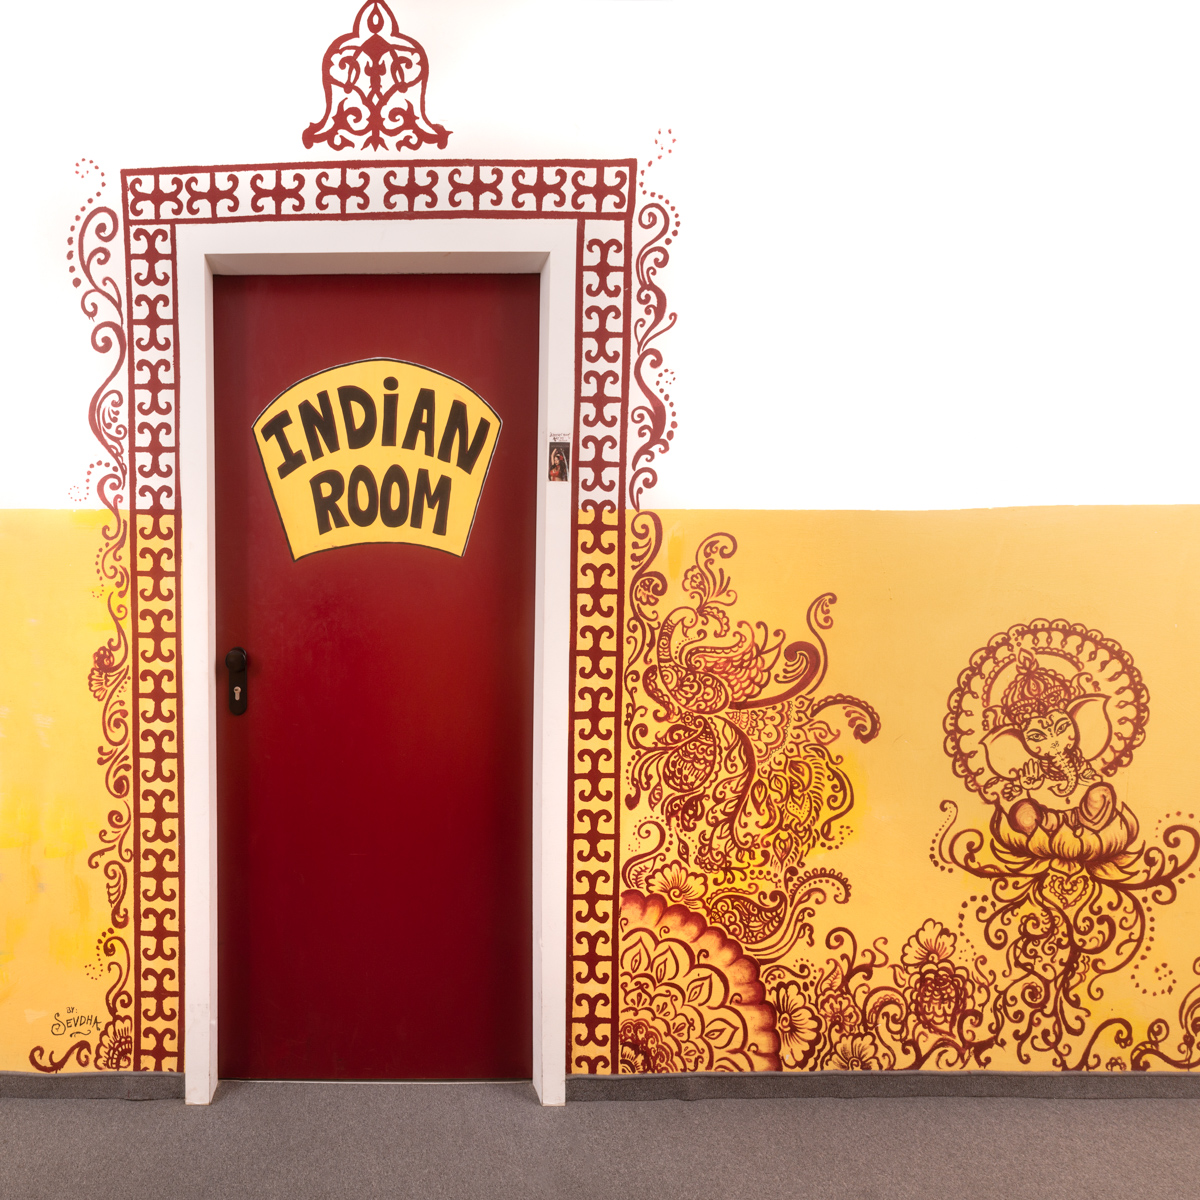 The Indian room door with painting